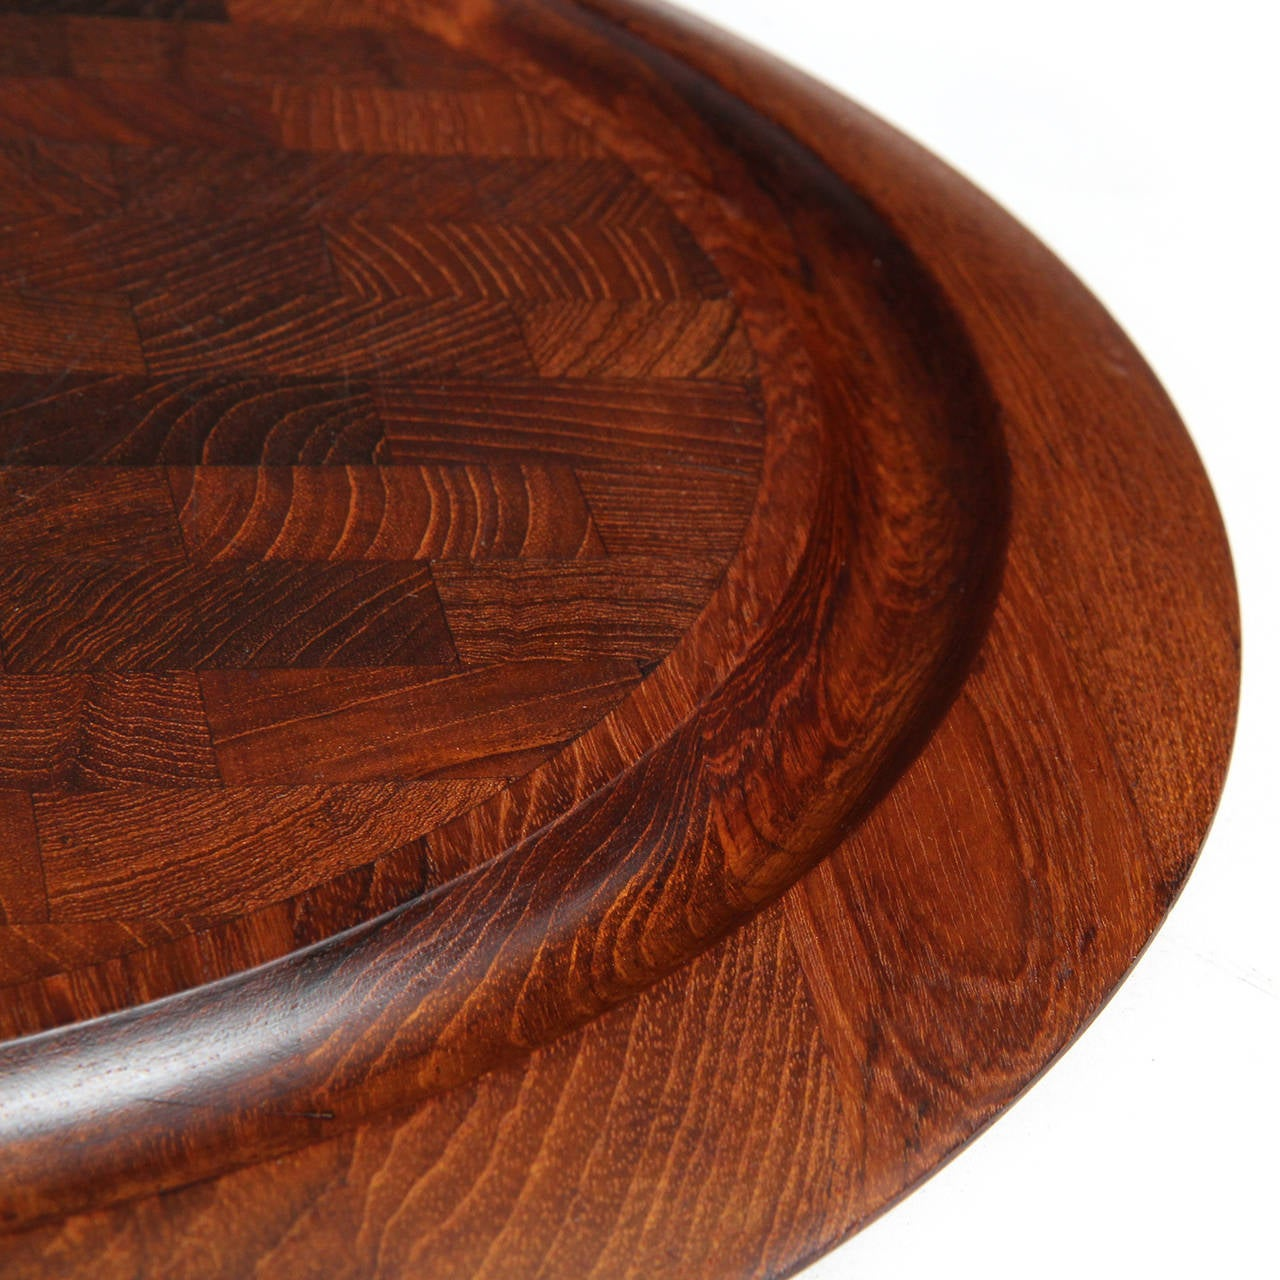 Mutenye Cheese Board by Jens Quistgaard In Good Condition For Sale In Sagaponack, NY